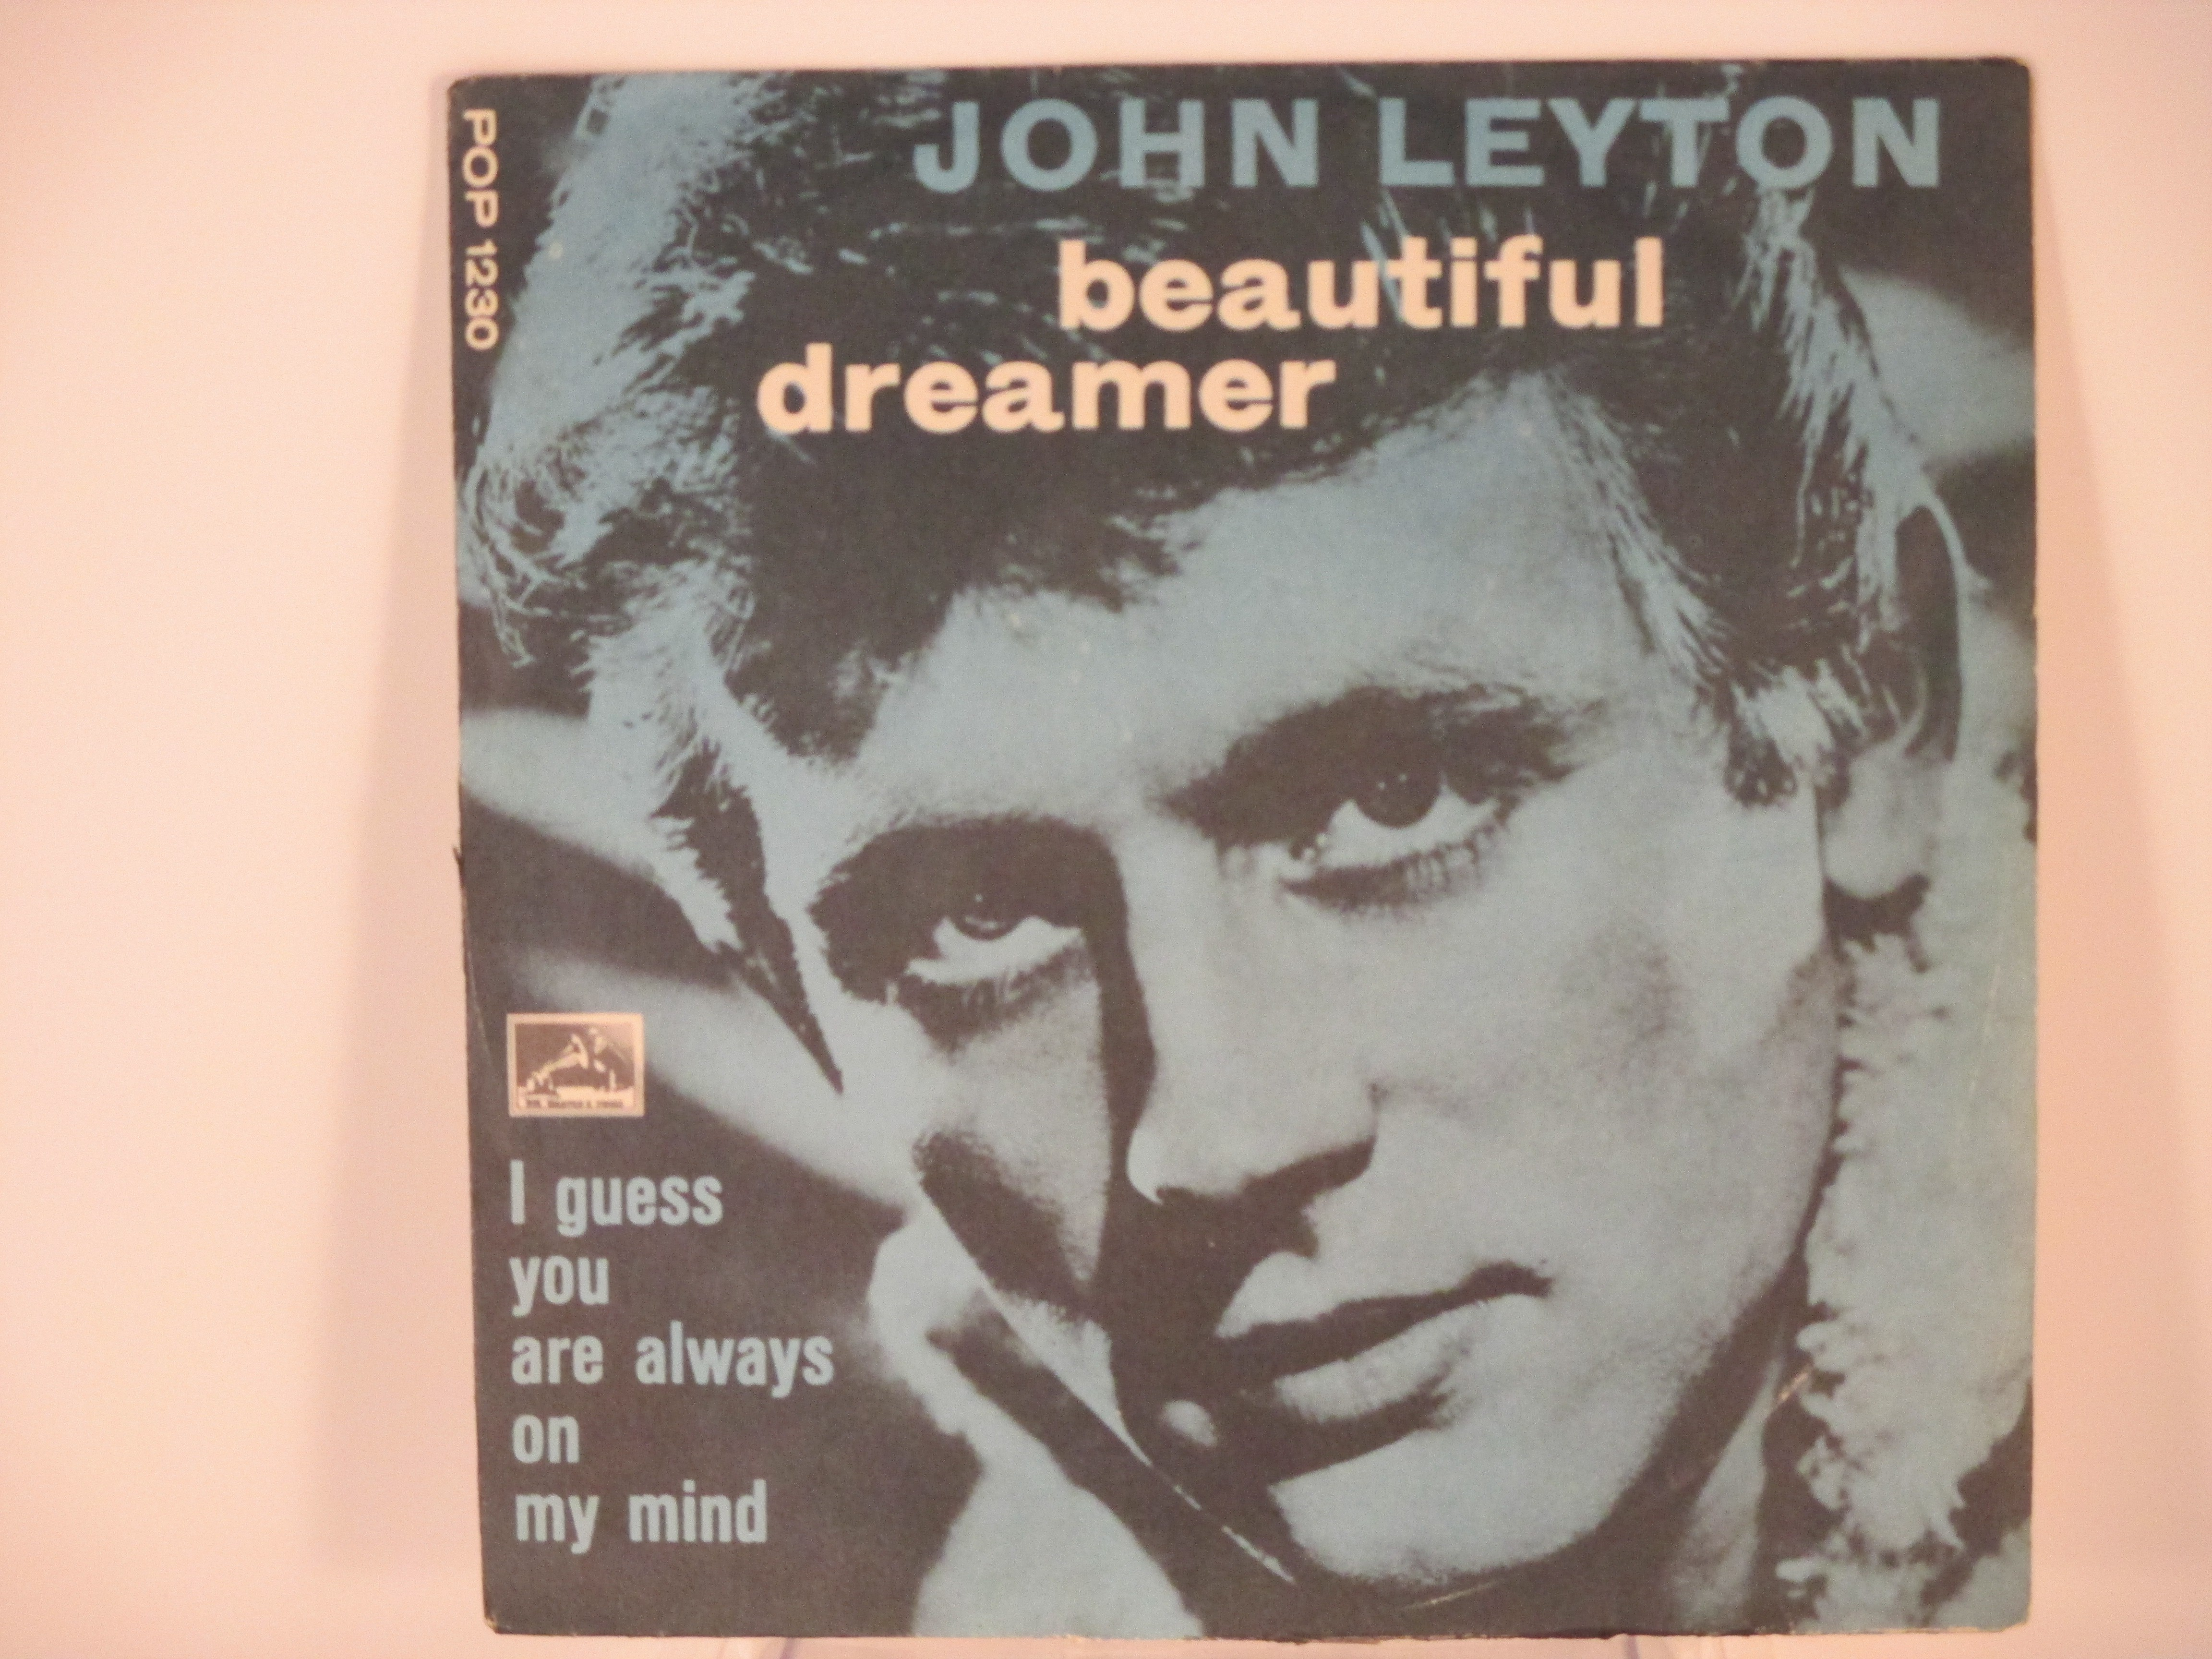 JOHN LEYTON : Beautiful dreamer / I guess you are always on my mind